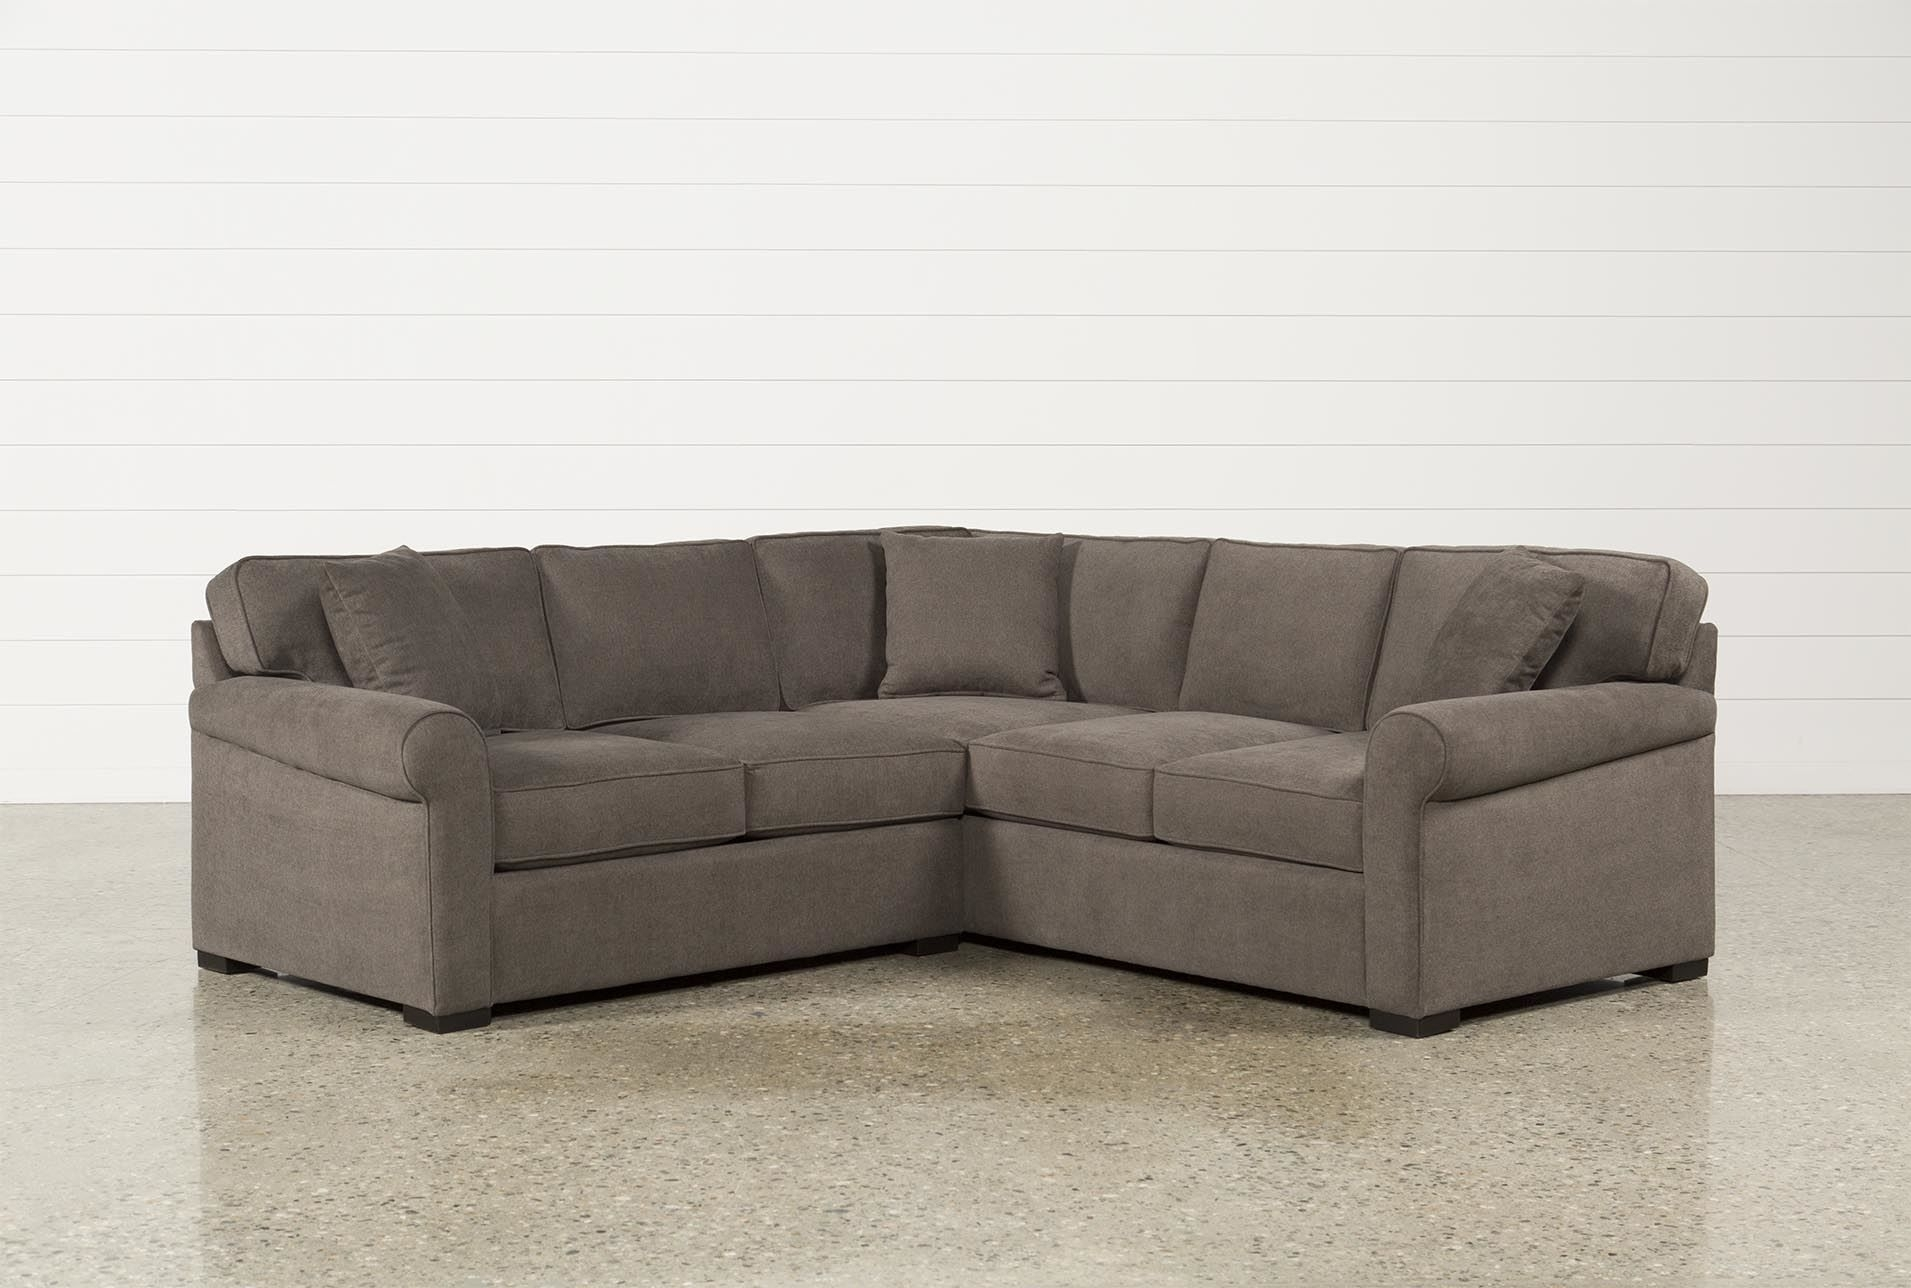 Elm Grande 2 Piece Sectional, Grey, Sofas | Pinterest | Living within Arrowmask 2 Piece Sectionals With Sleeper & Right Facing Chaise (Image 7 of 30)